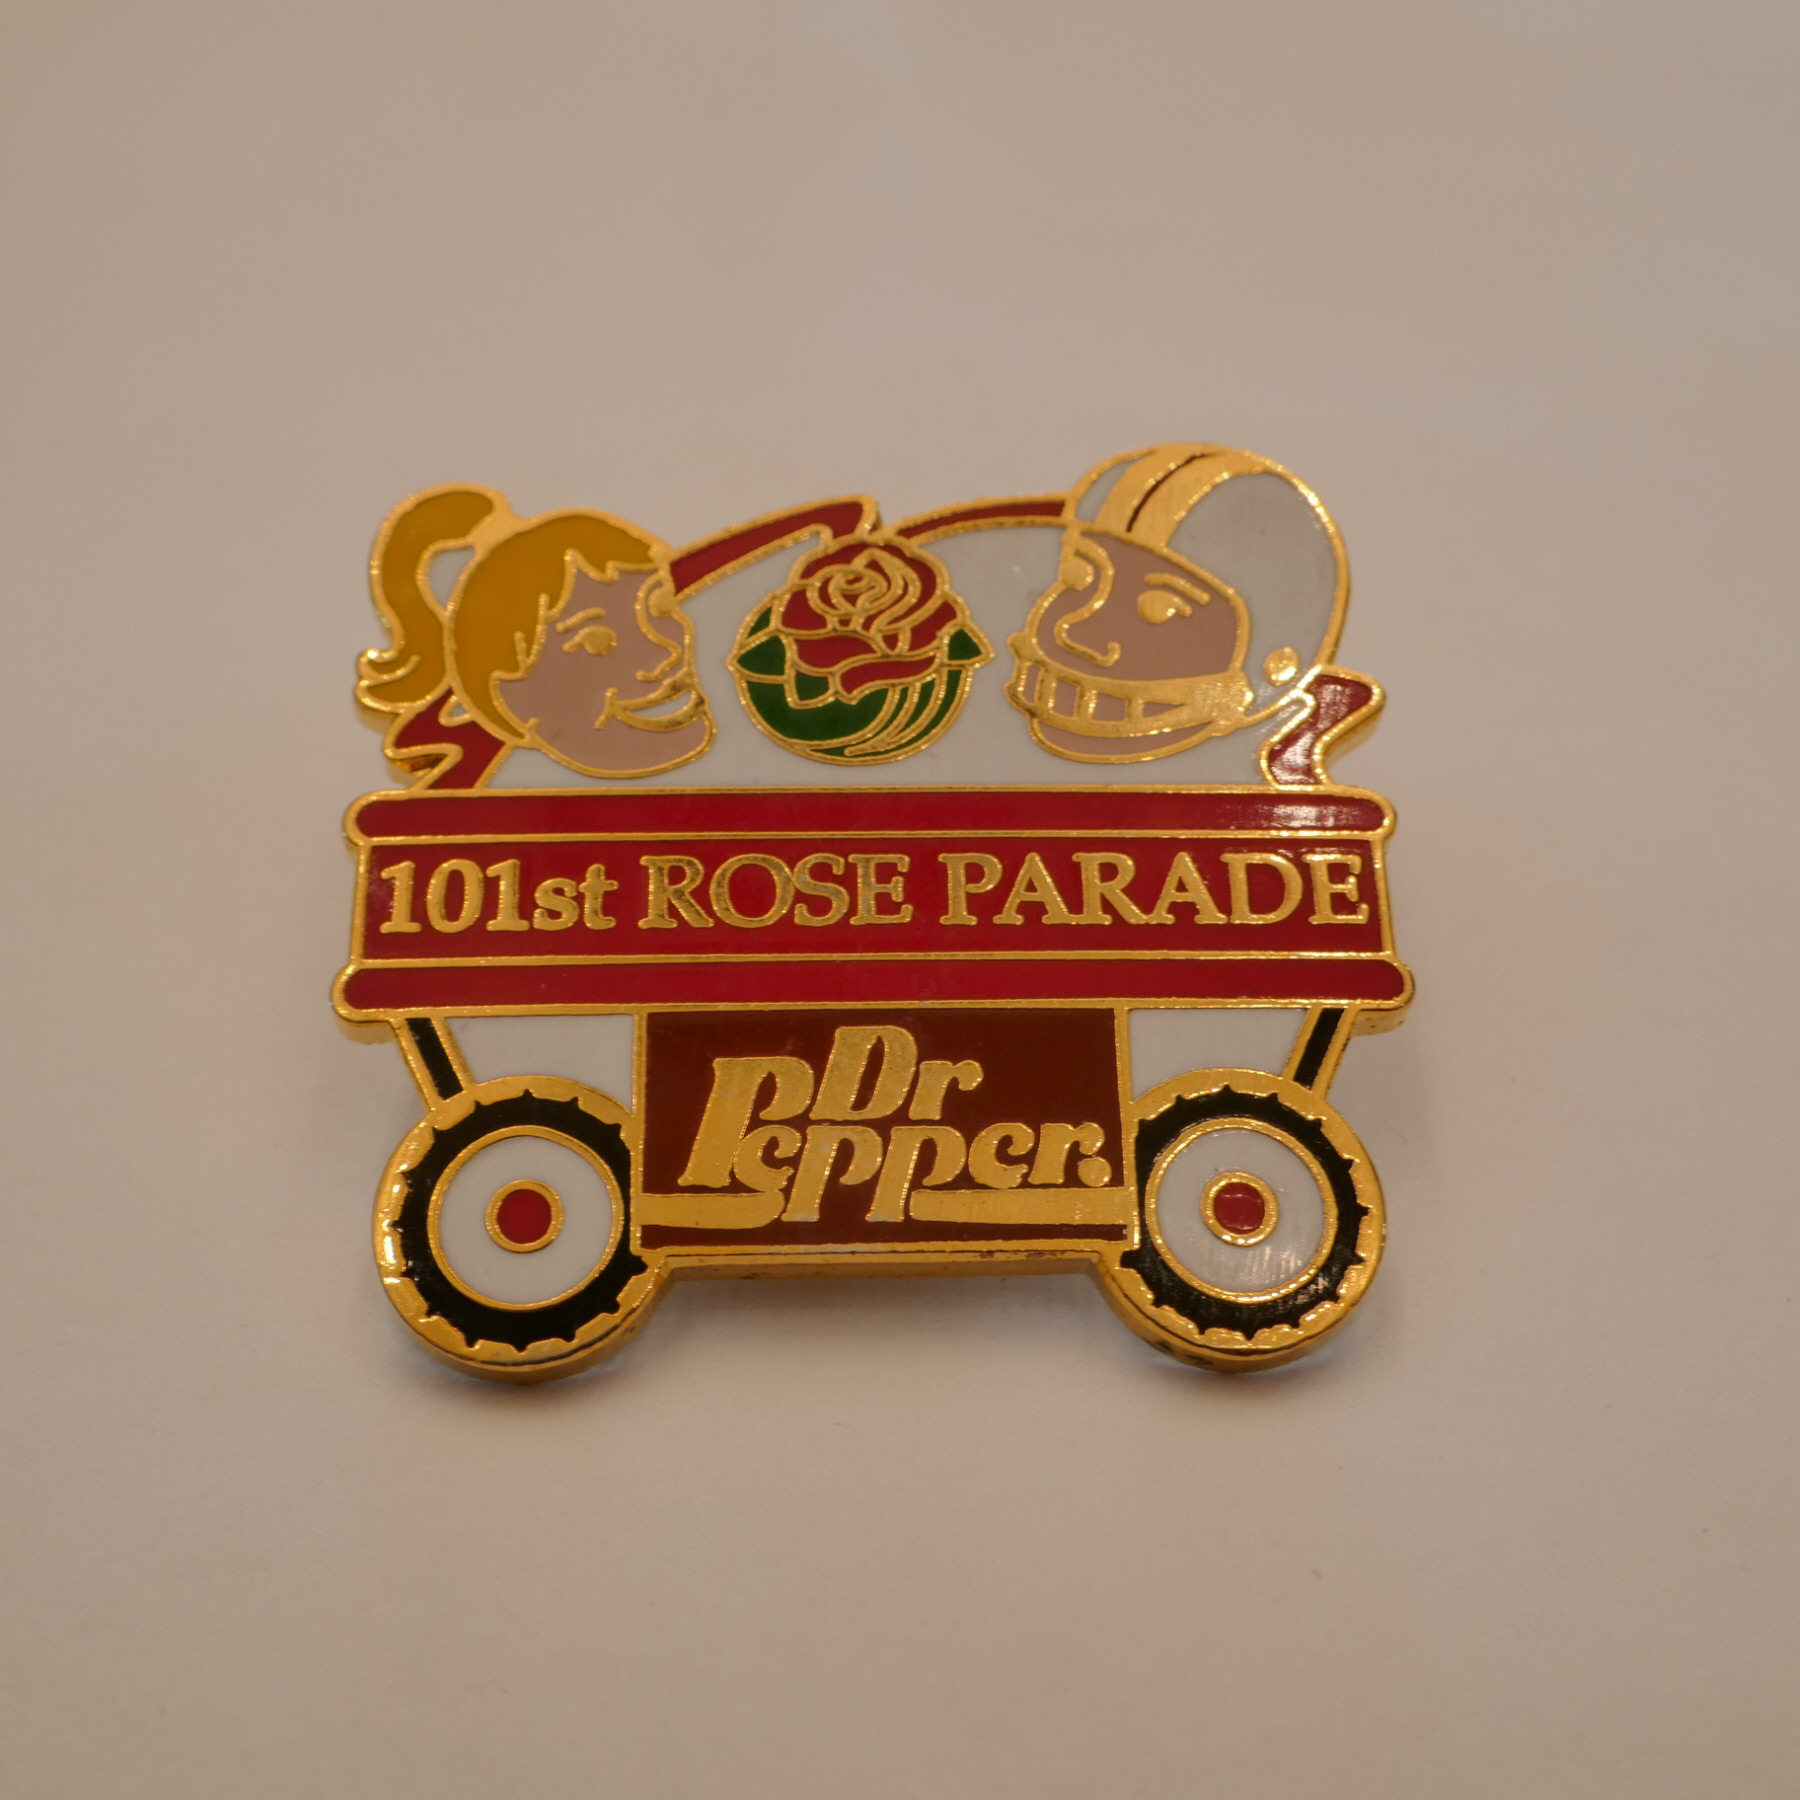 DrPepper 101st ROSE PARADE pins